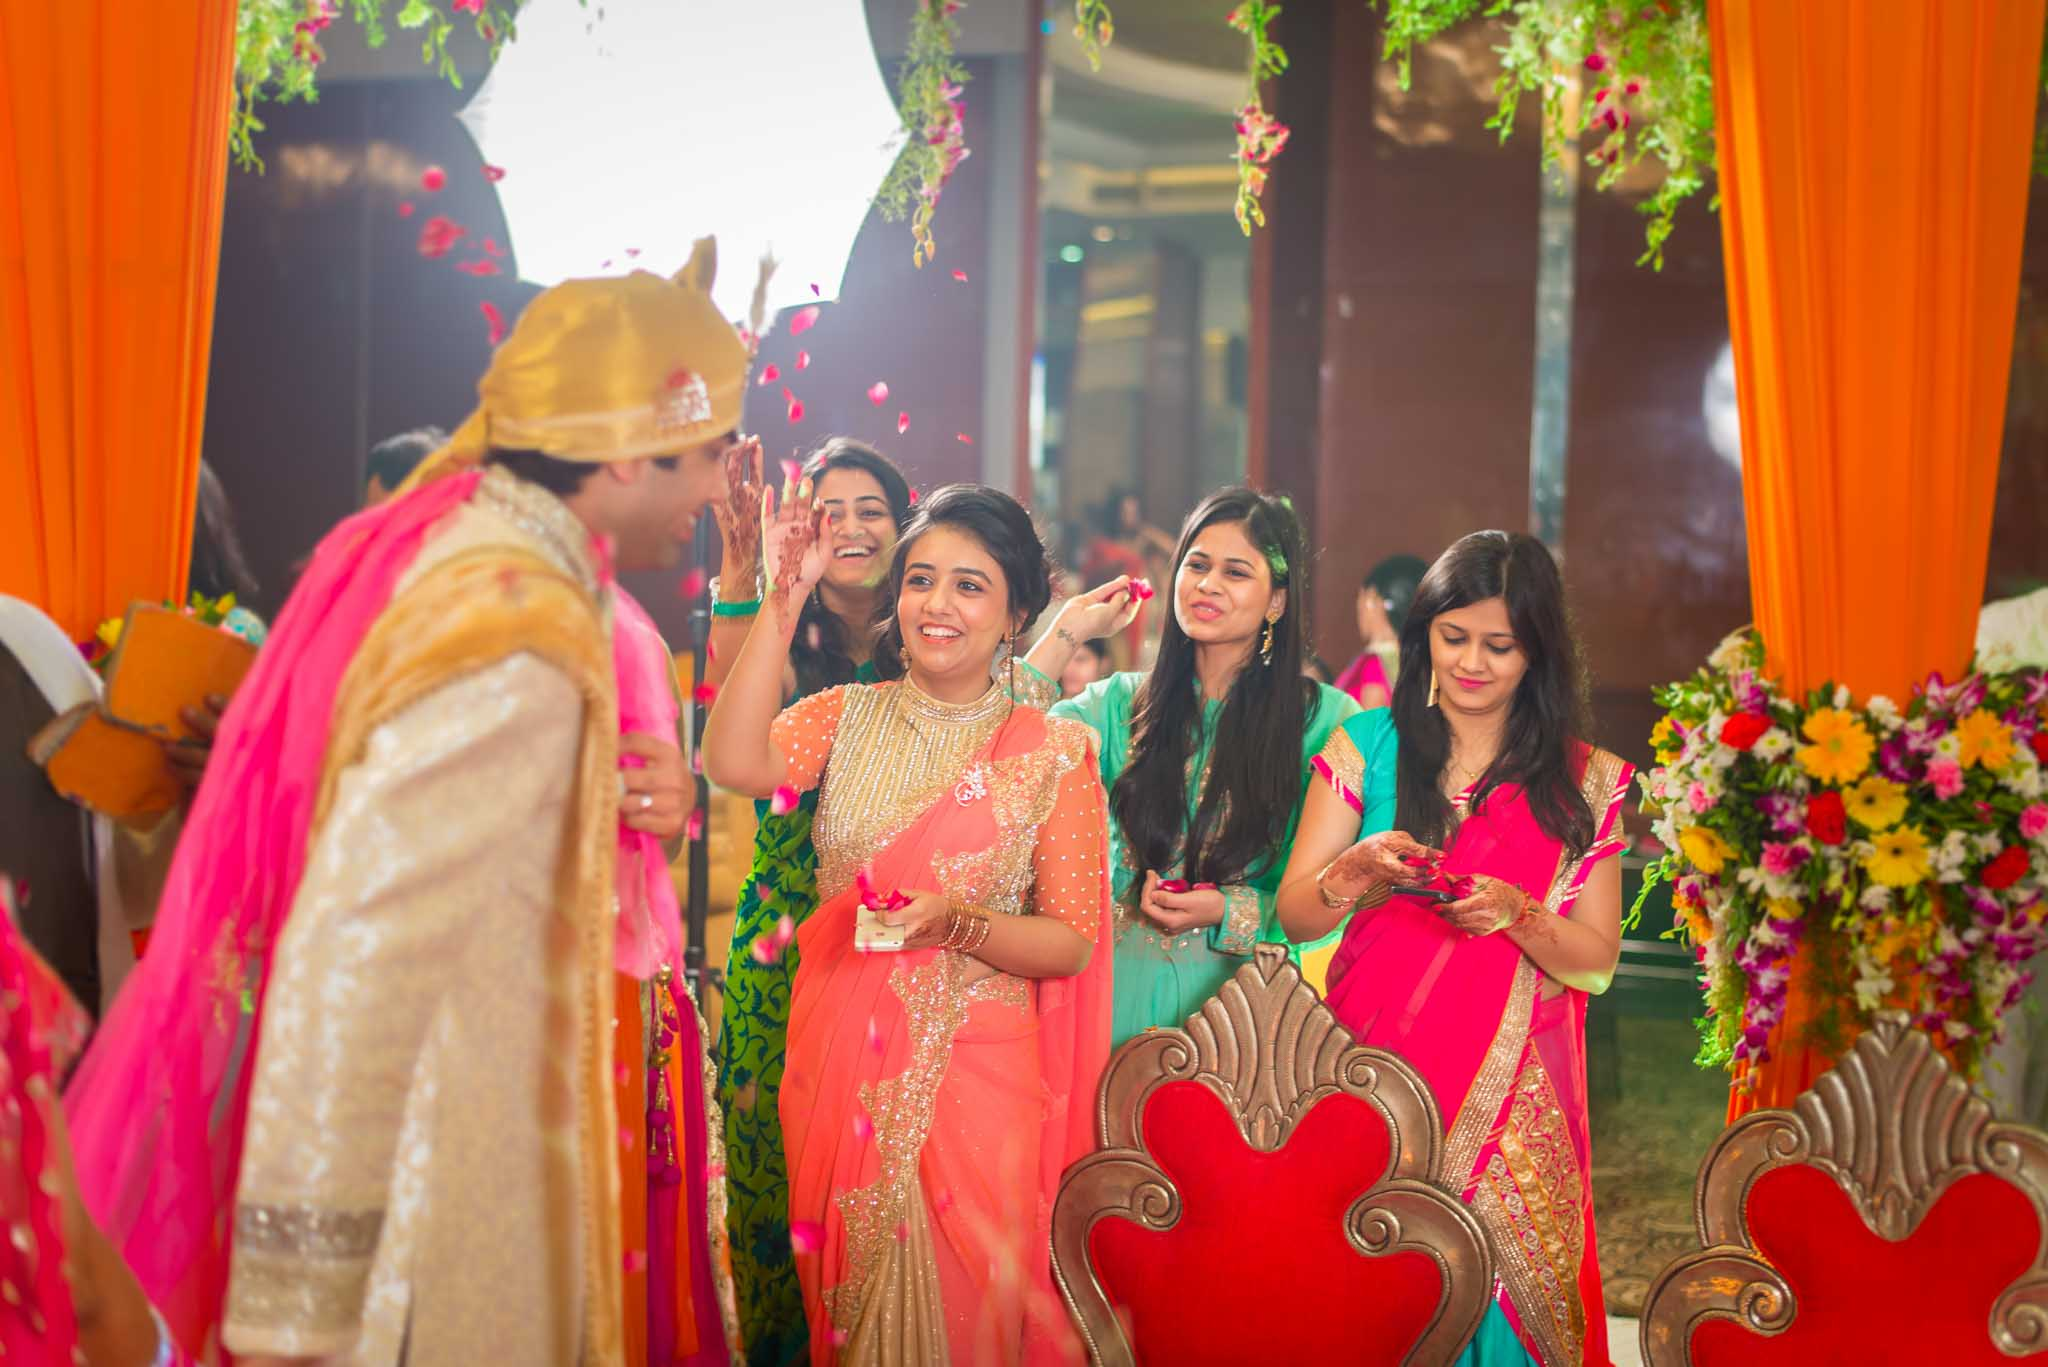 Candid-Wedding-Photography-Nagpur-Destination-84